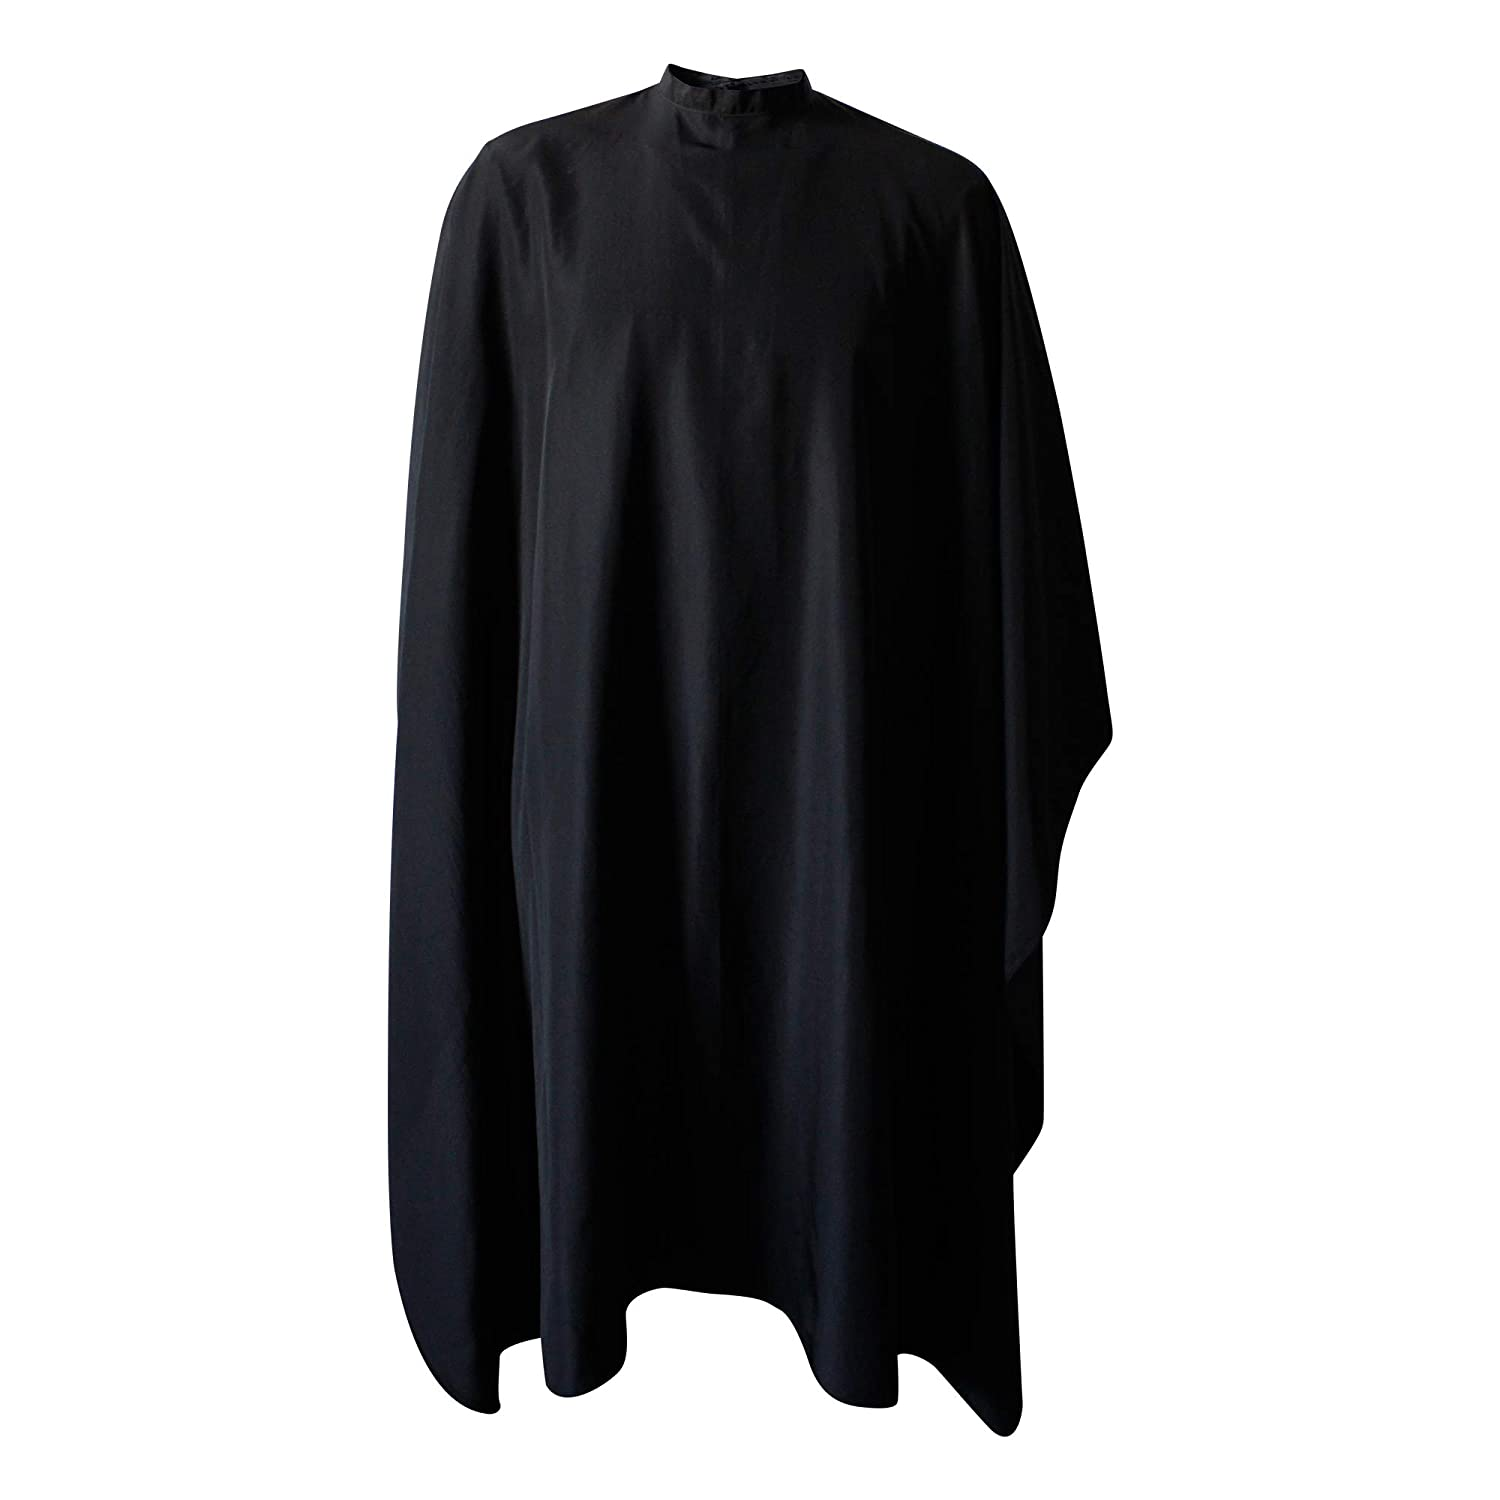 SMARTHAIR Professional Salon Cape Polyester Haircut Apron Barber Hairdressing Gown, 54x62, Black, C007001E-L 54x62